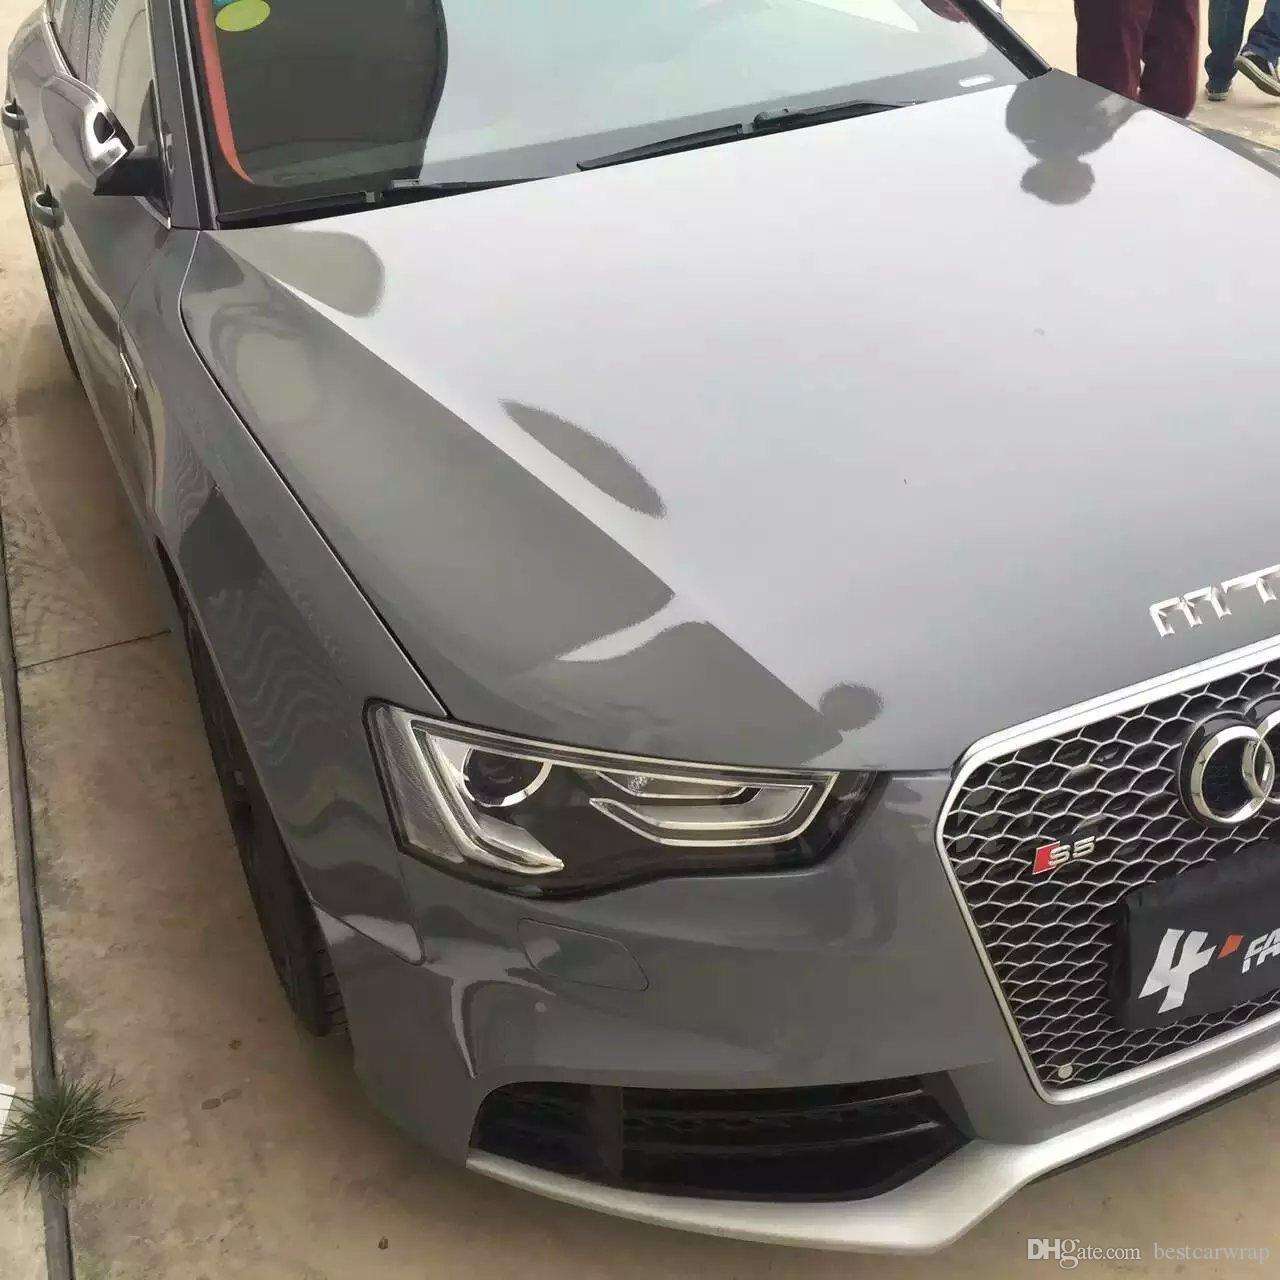 Car Vinyl Wrap Cost >> 2017 3 Layers Cement Grey High Gloss Vinyl Wrap Like 3m Cement Ultra Glossy Cement Car Wrap Coat ...